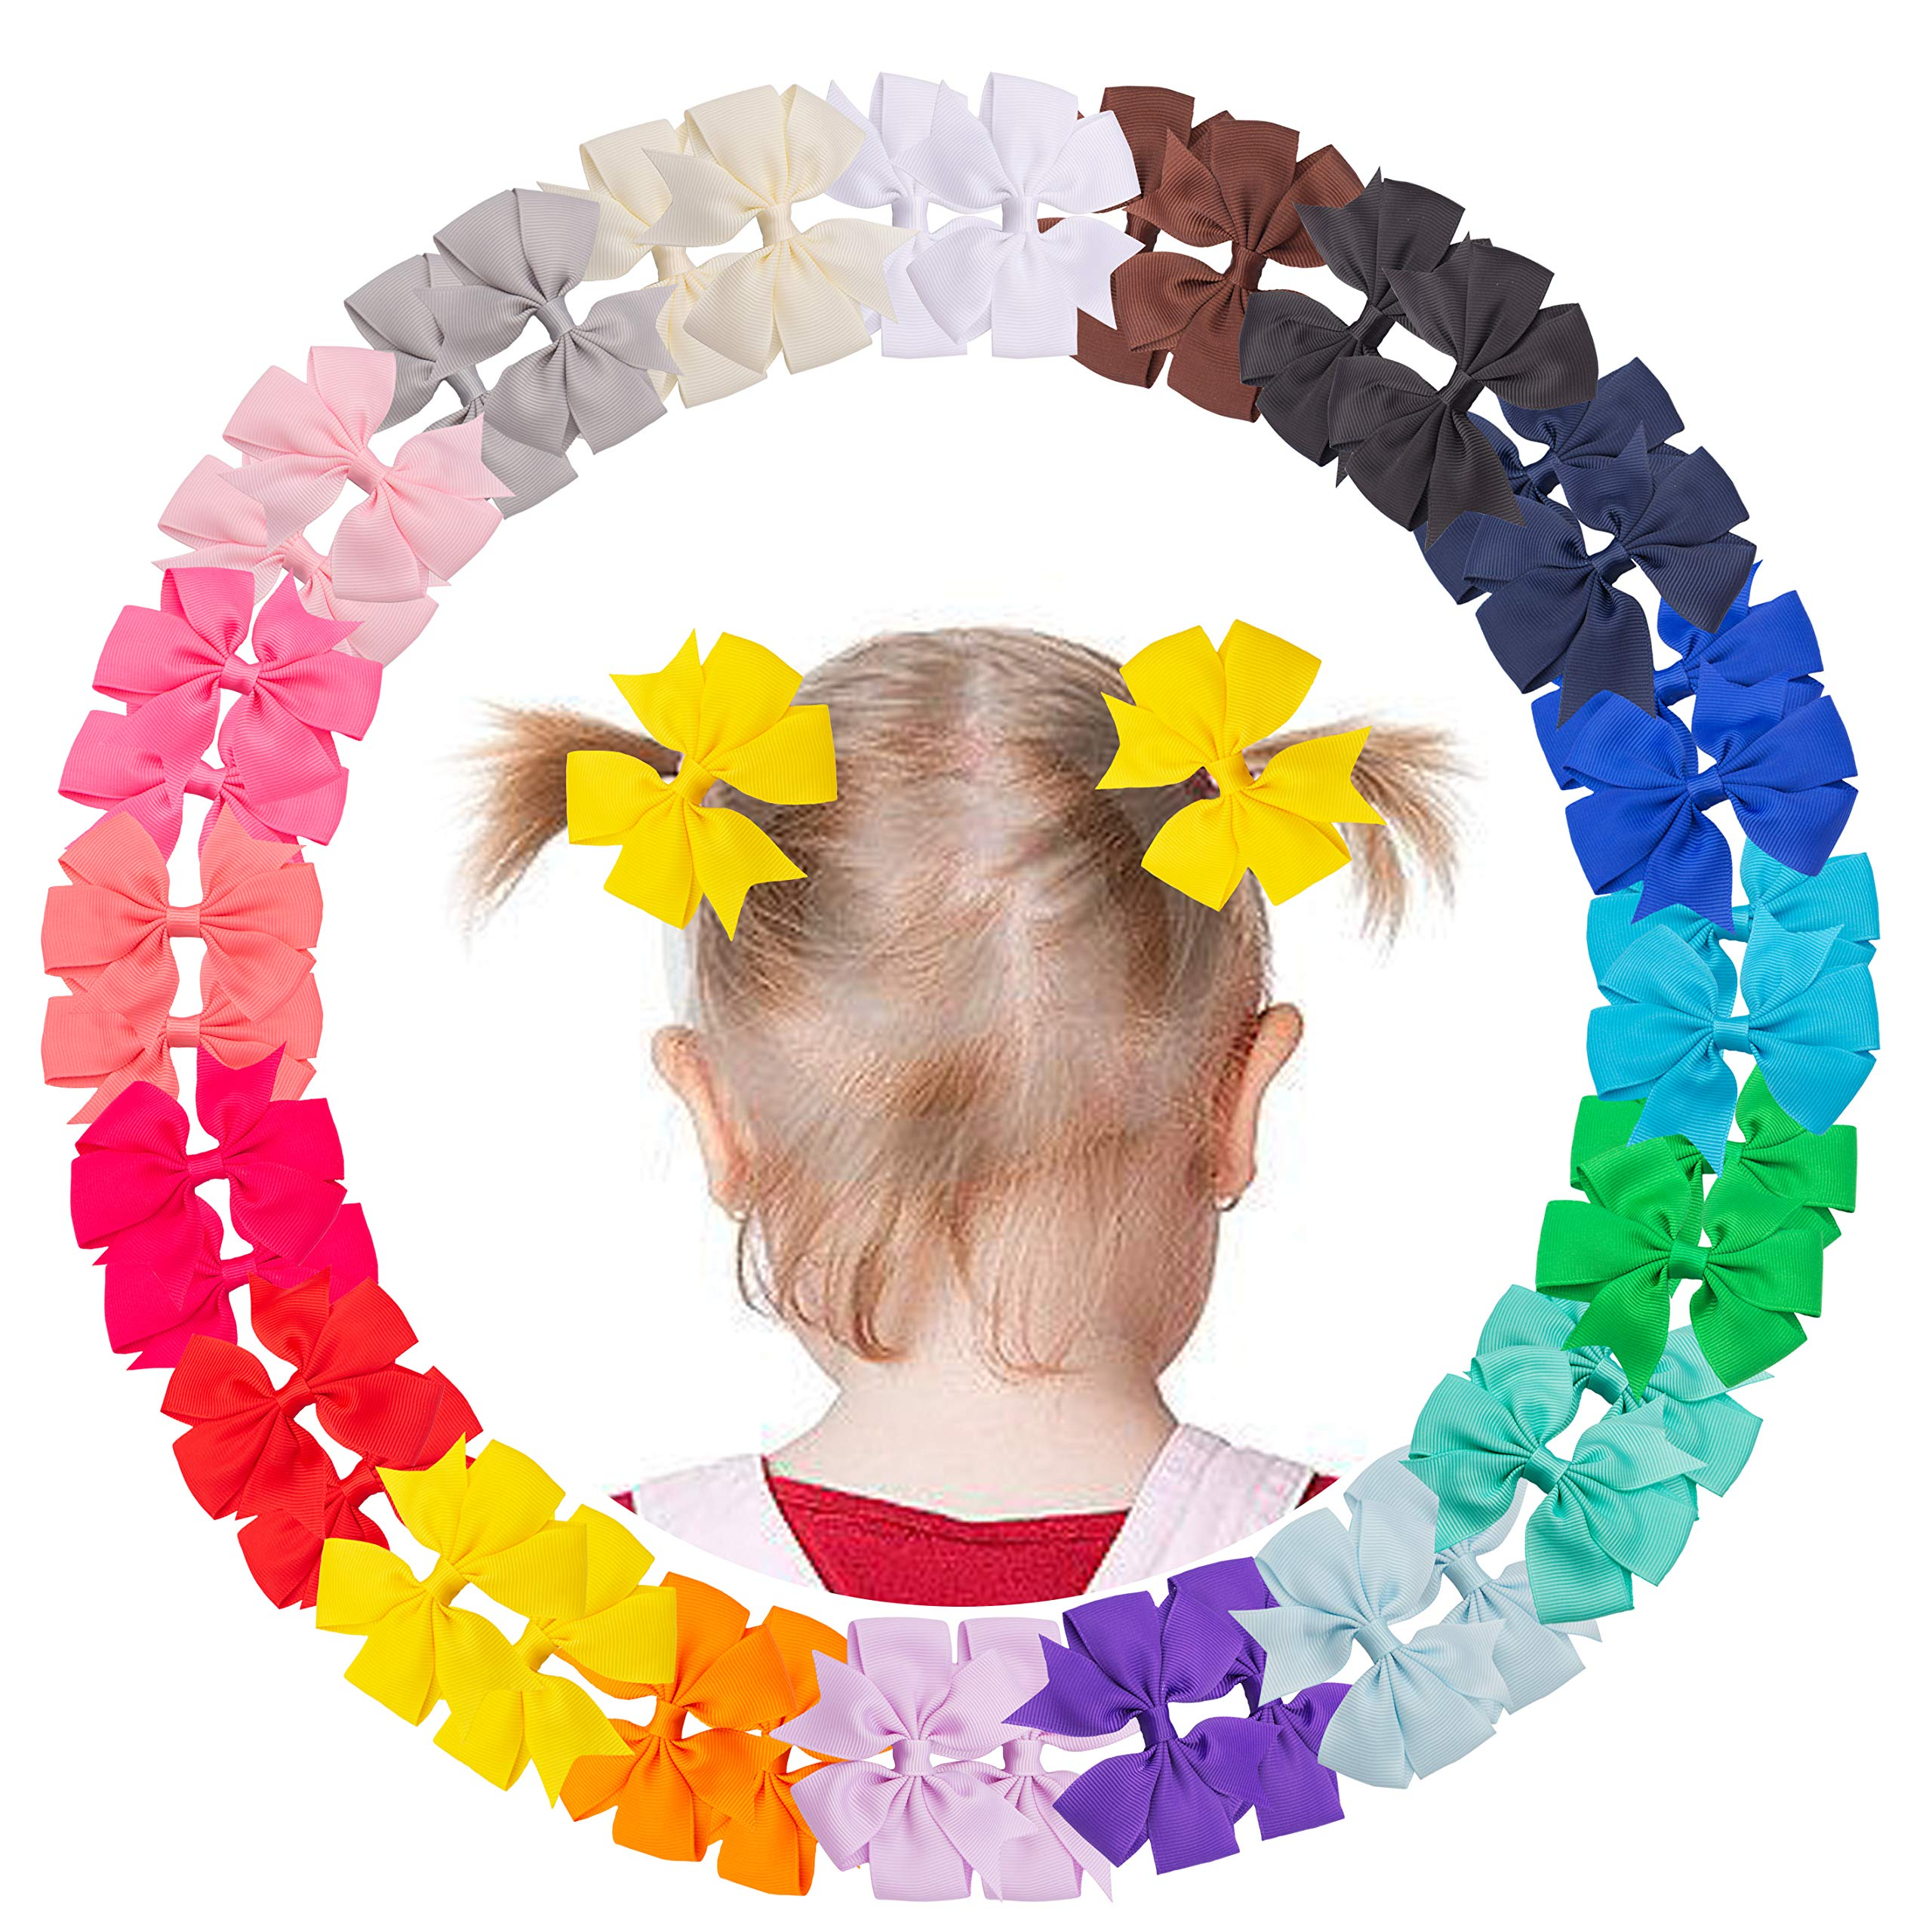 VINOBOW 40Piece 3Inch Pinwheel Hair Bows For Girls Hair Barrettes Hair Accessories Bow Sets For Toddler Girls Baby